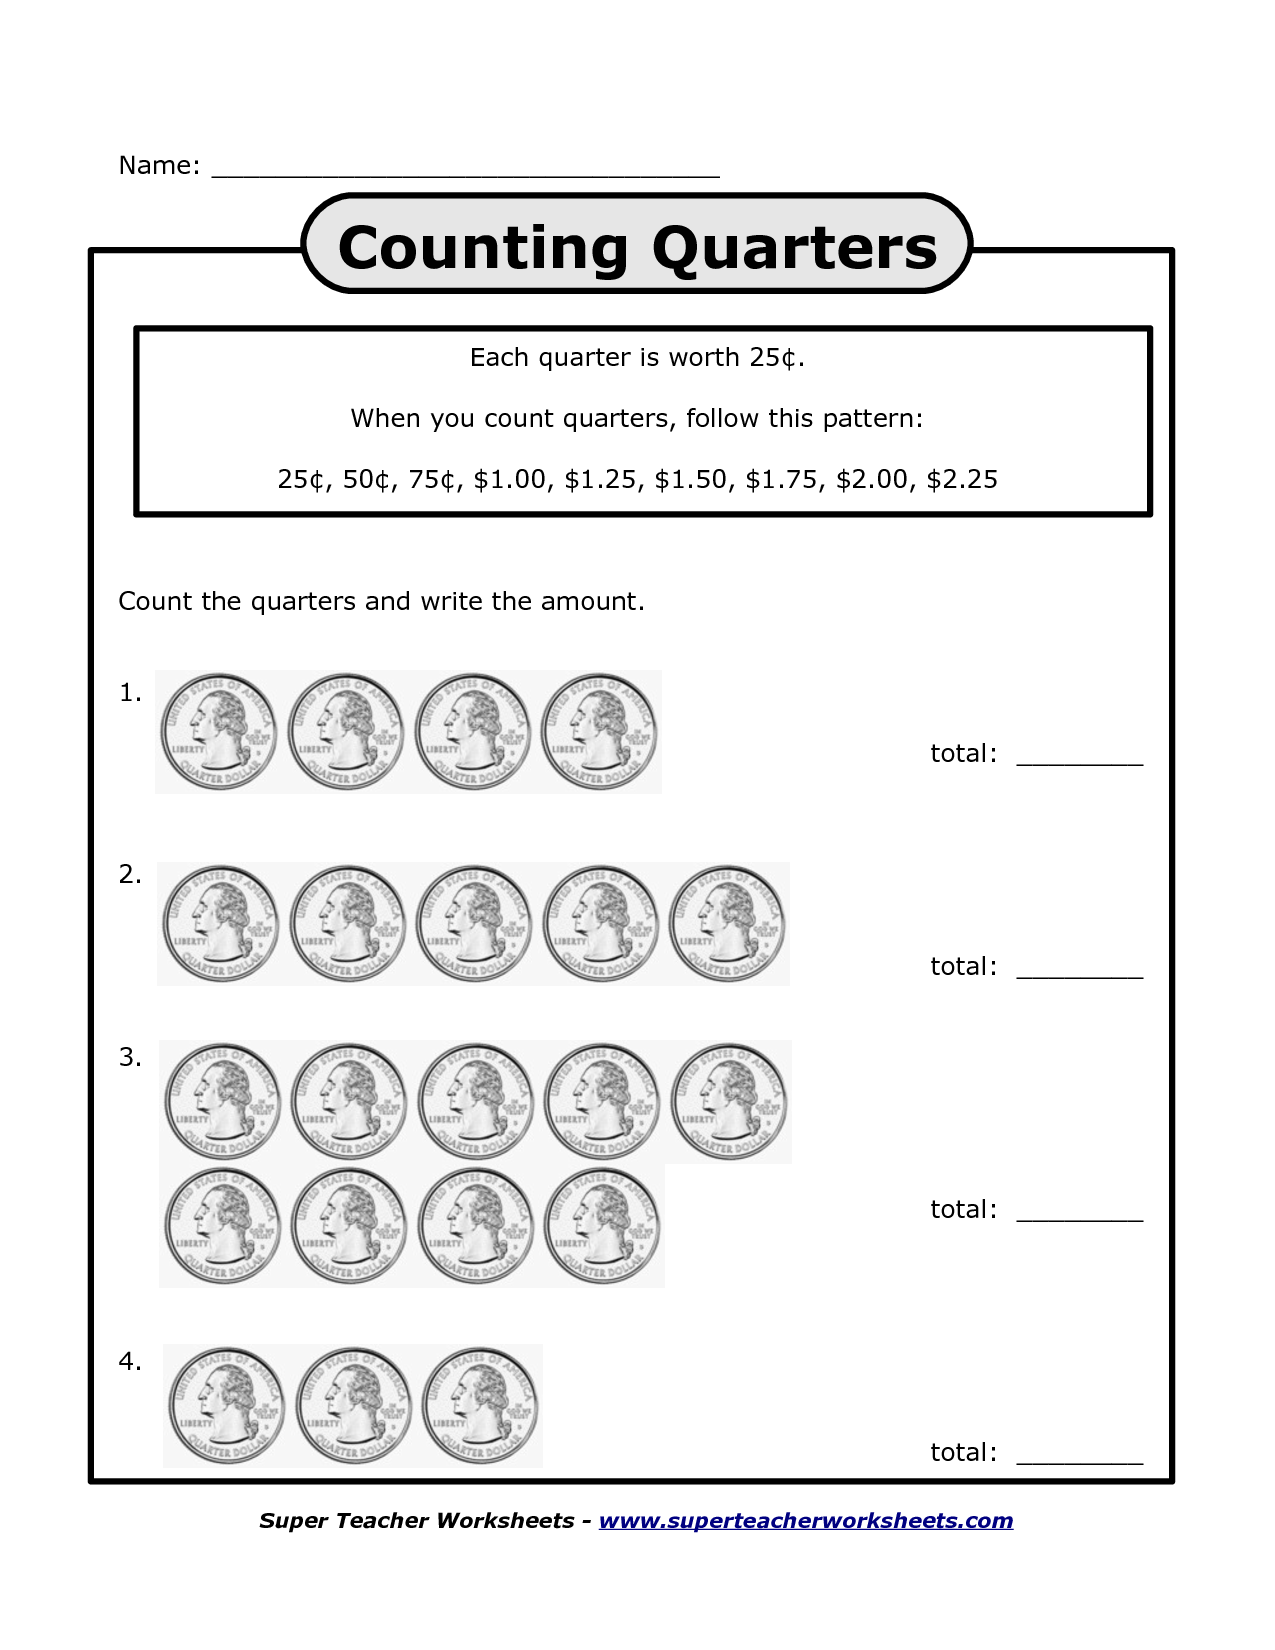 Worksheets Counting Quarters Worksheet counting quarters worksheets bing images homeschool pinterest images